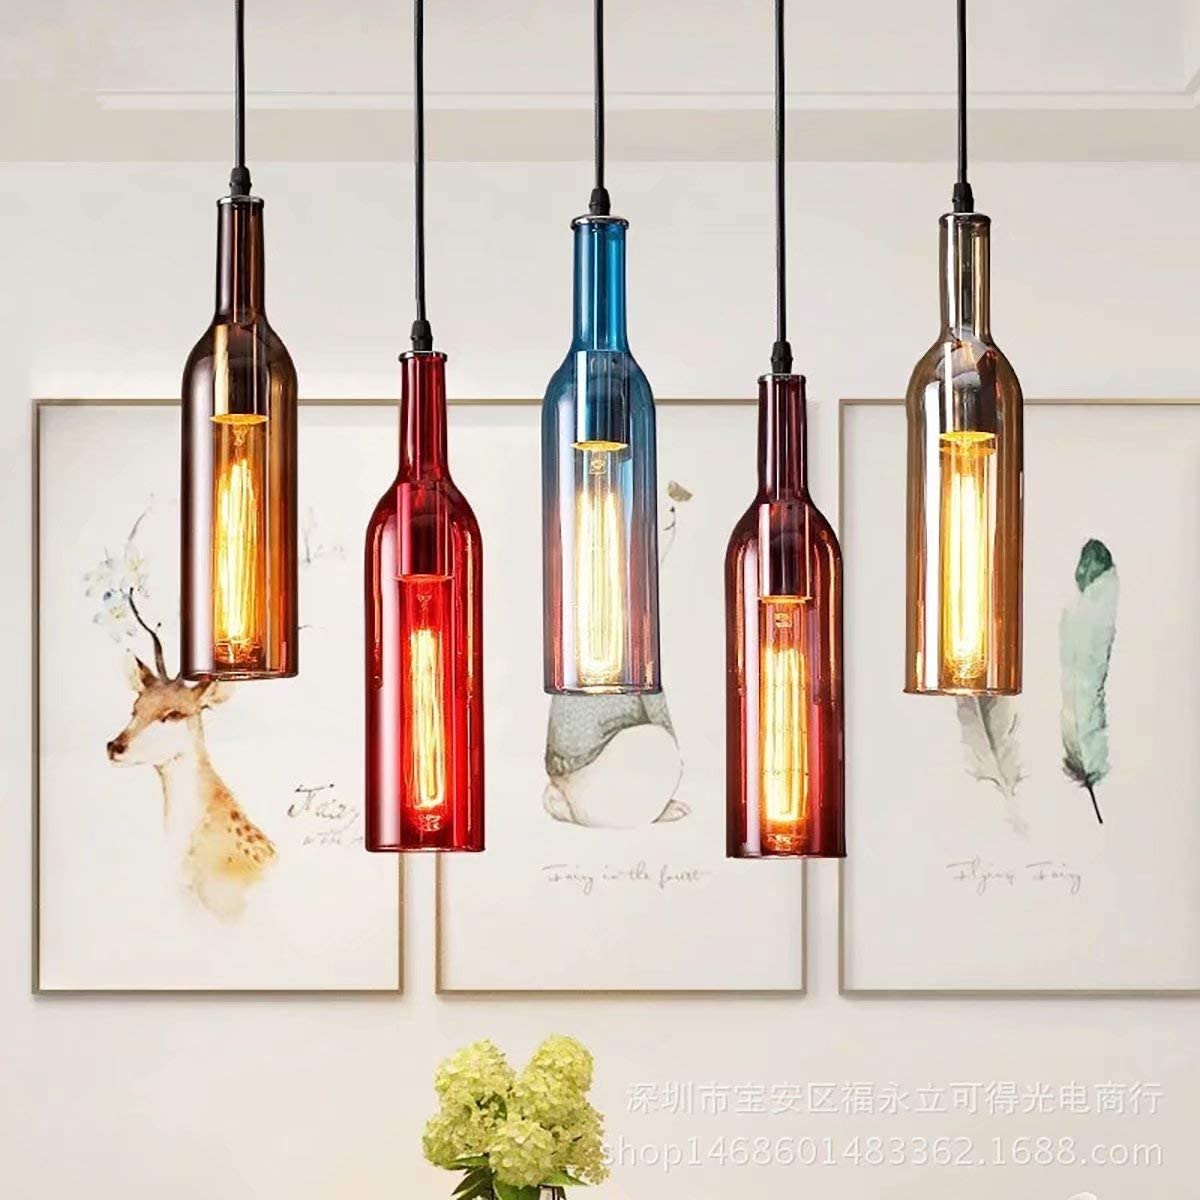 Vintage Industrial Colored Glass Liquor Bottle Pendant Light, Wine Bottle Creative Retro Chandelier for Cafe Loft Restaurant Kitchen Island Bar Dining Room Bar